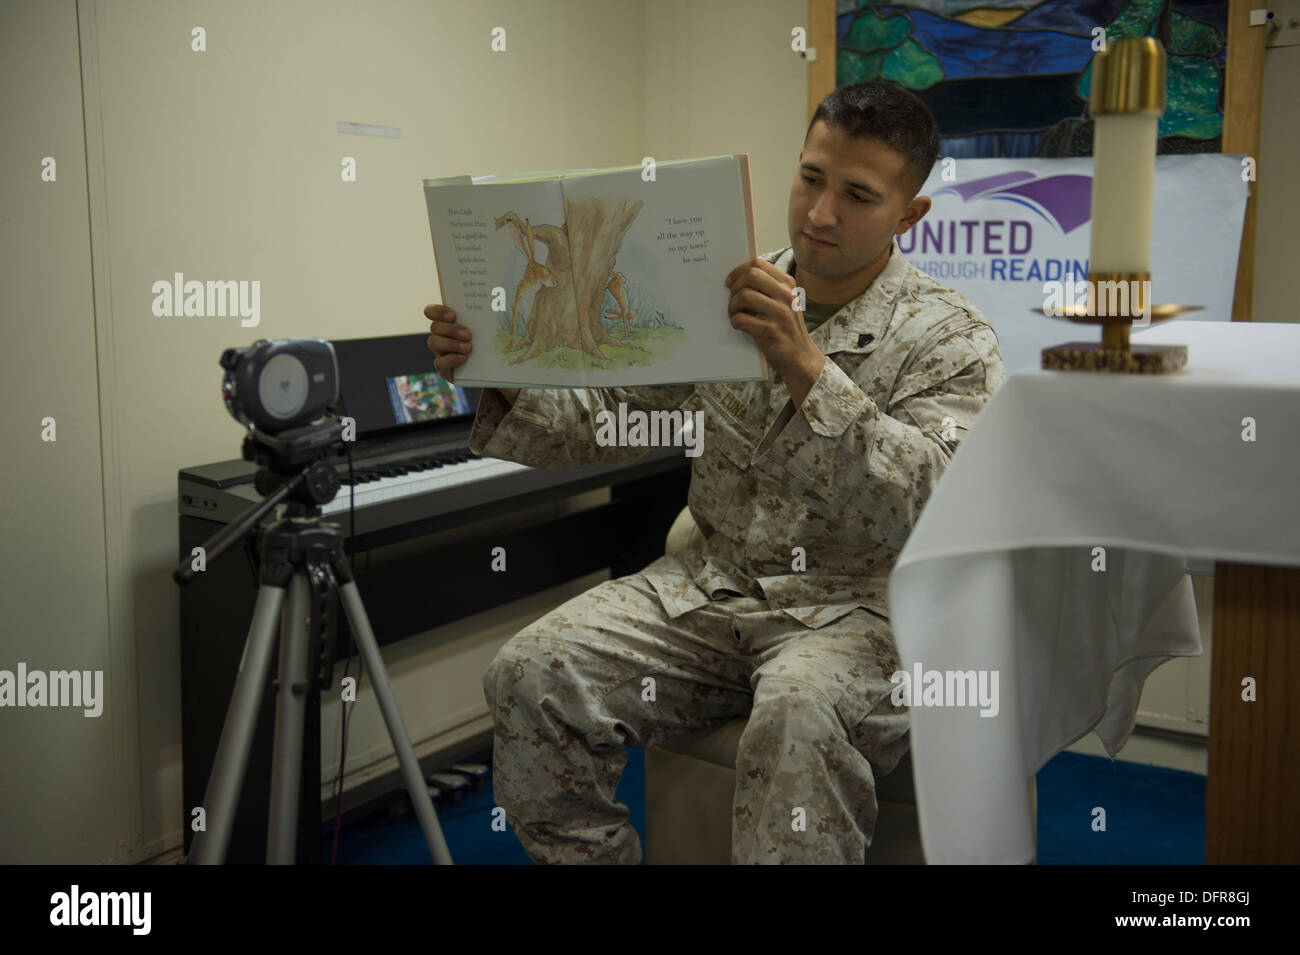 SOUTH CHINA SEA (Sept. 28, 2013) Sgt. Marcos Luna records himself reading a children's book as part of the United Through Readi - Stock Image